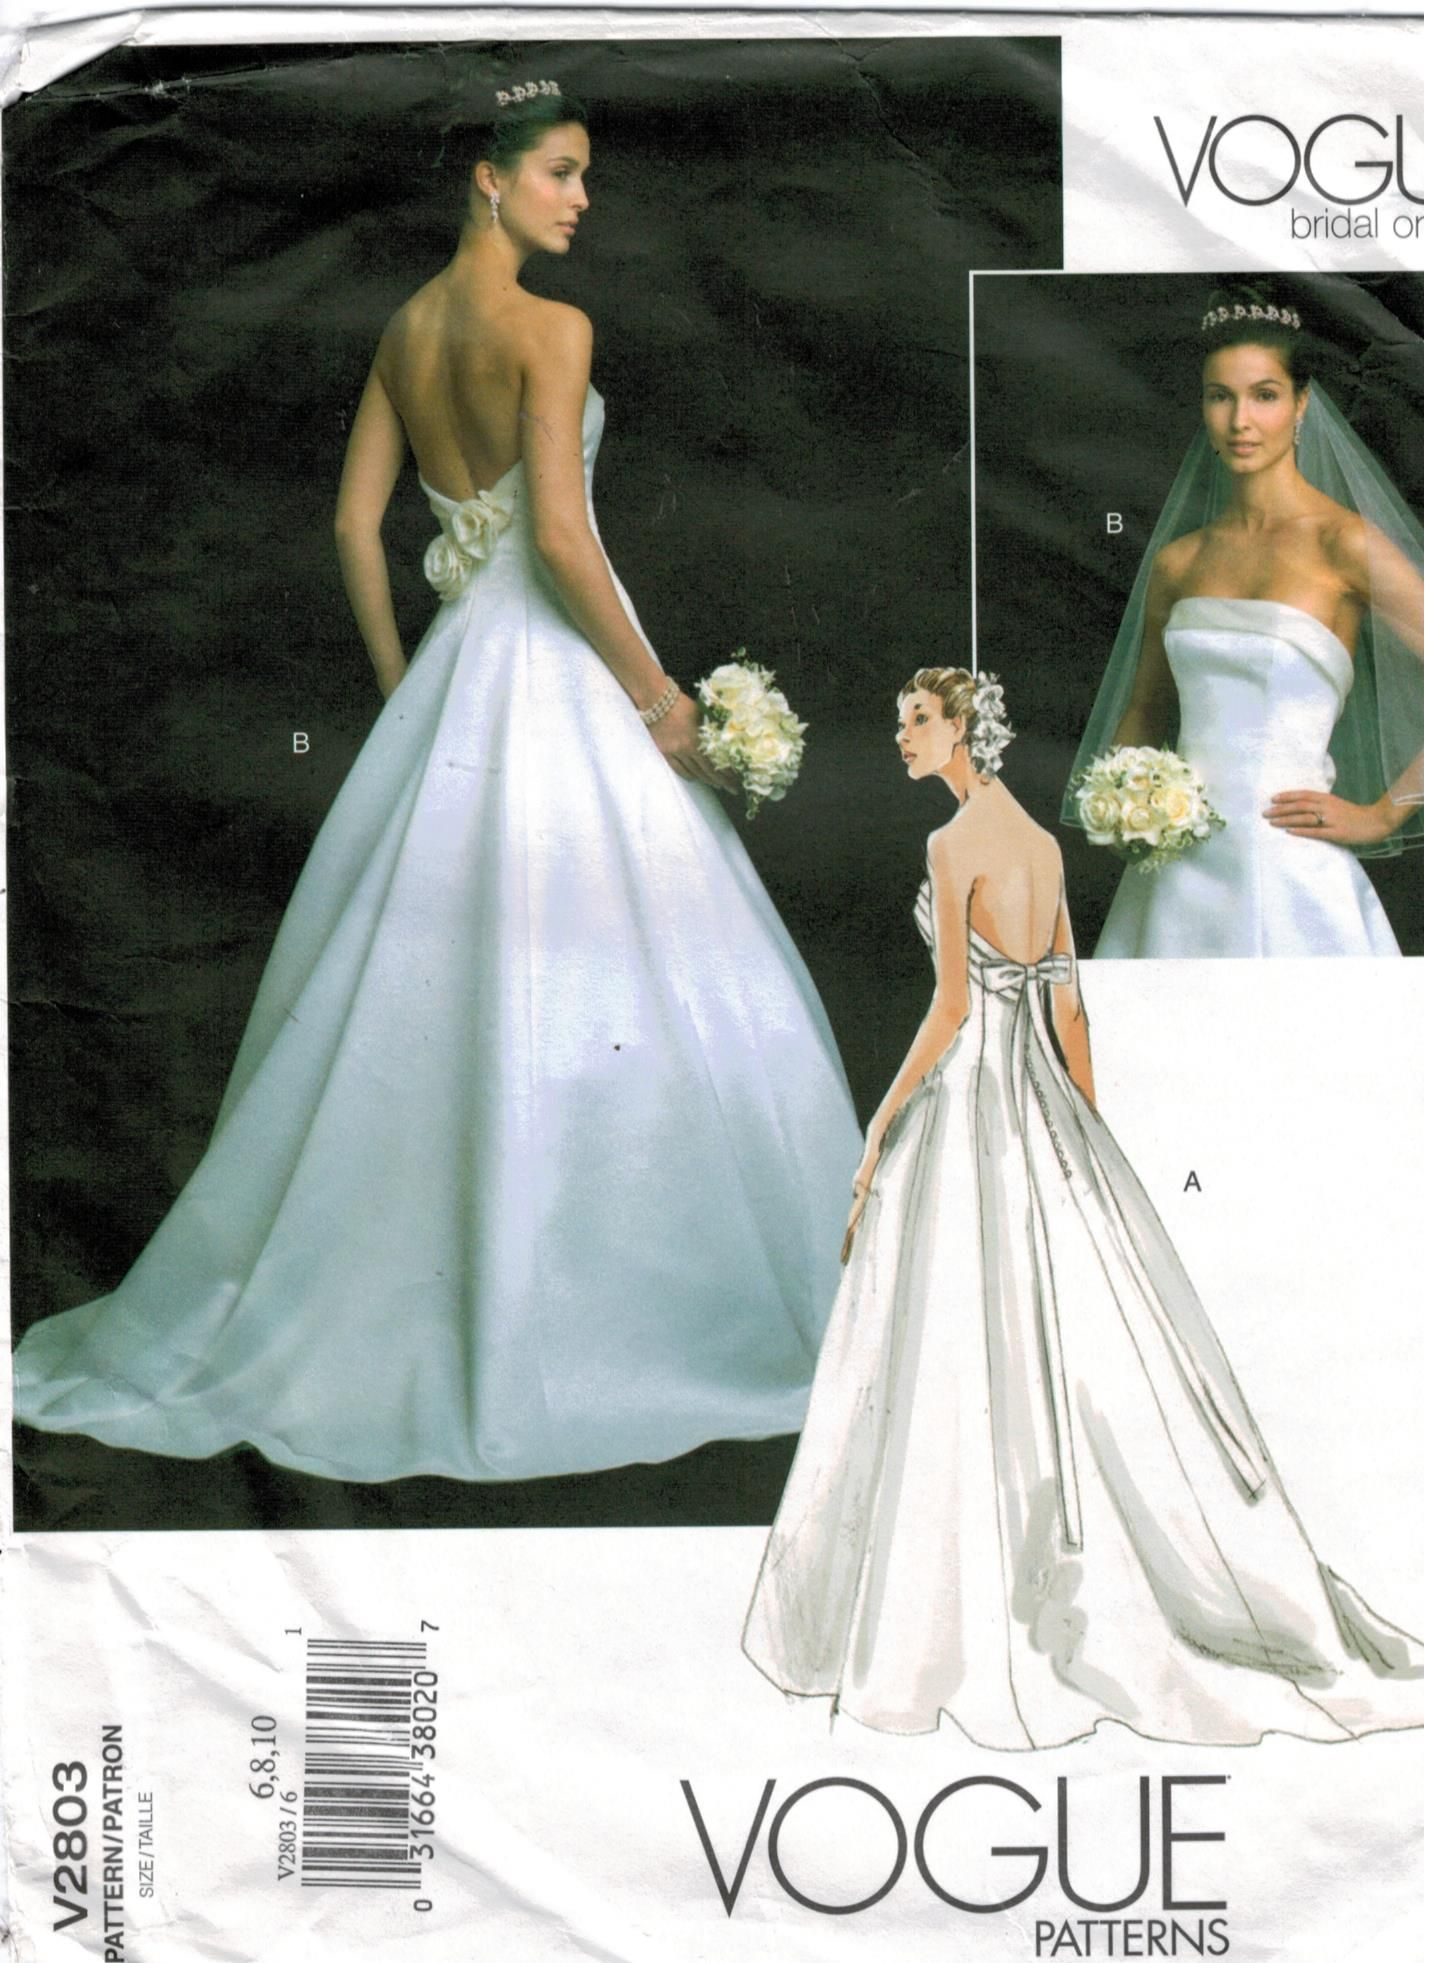 Planning A Summer Wedding This Beautiful Gown From Vogue Patterns Is Perfect For Your Special